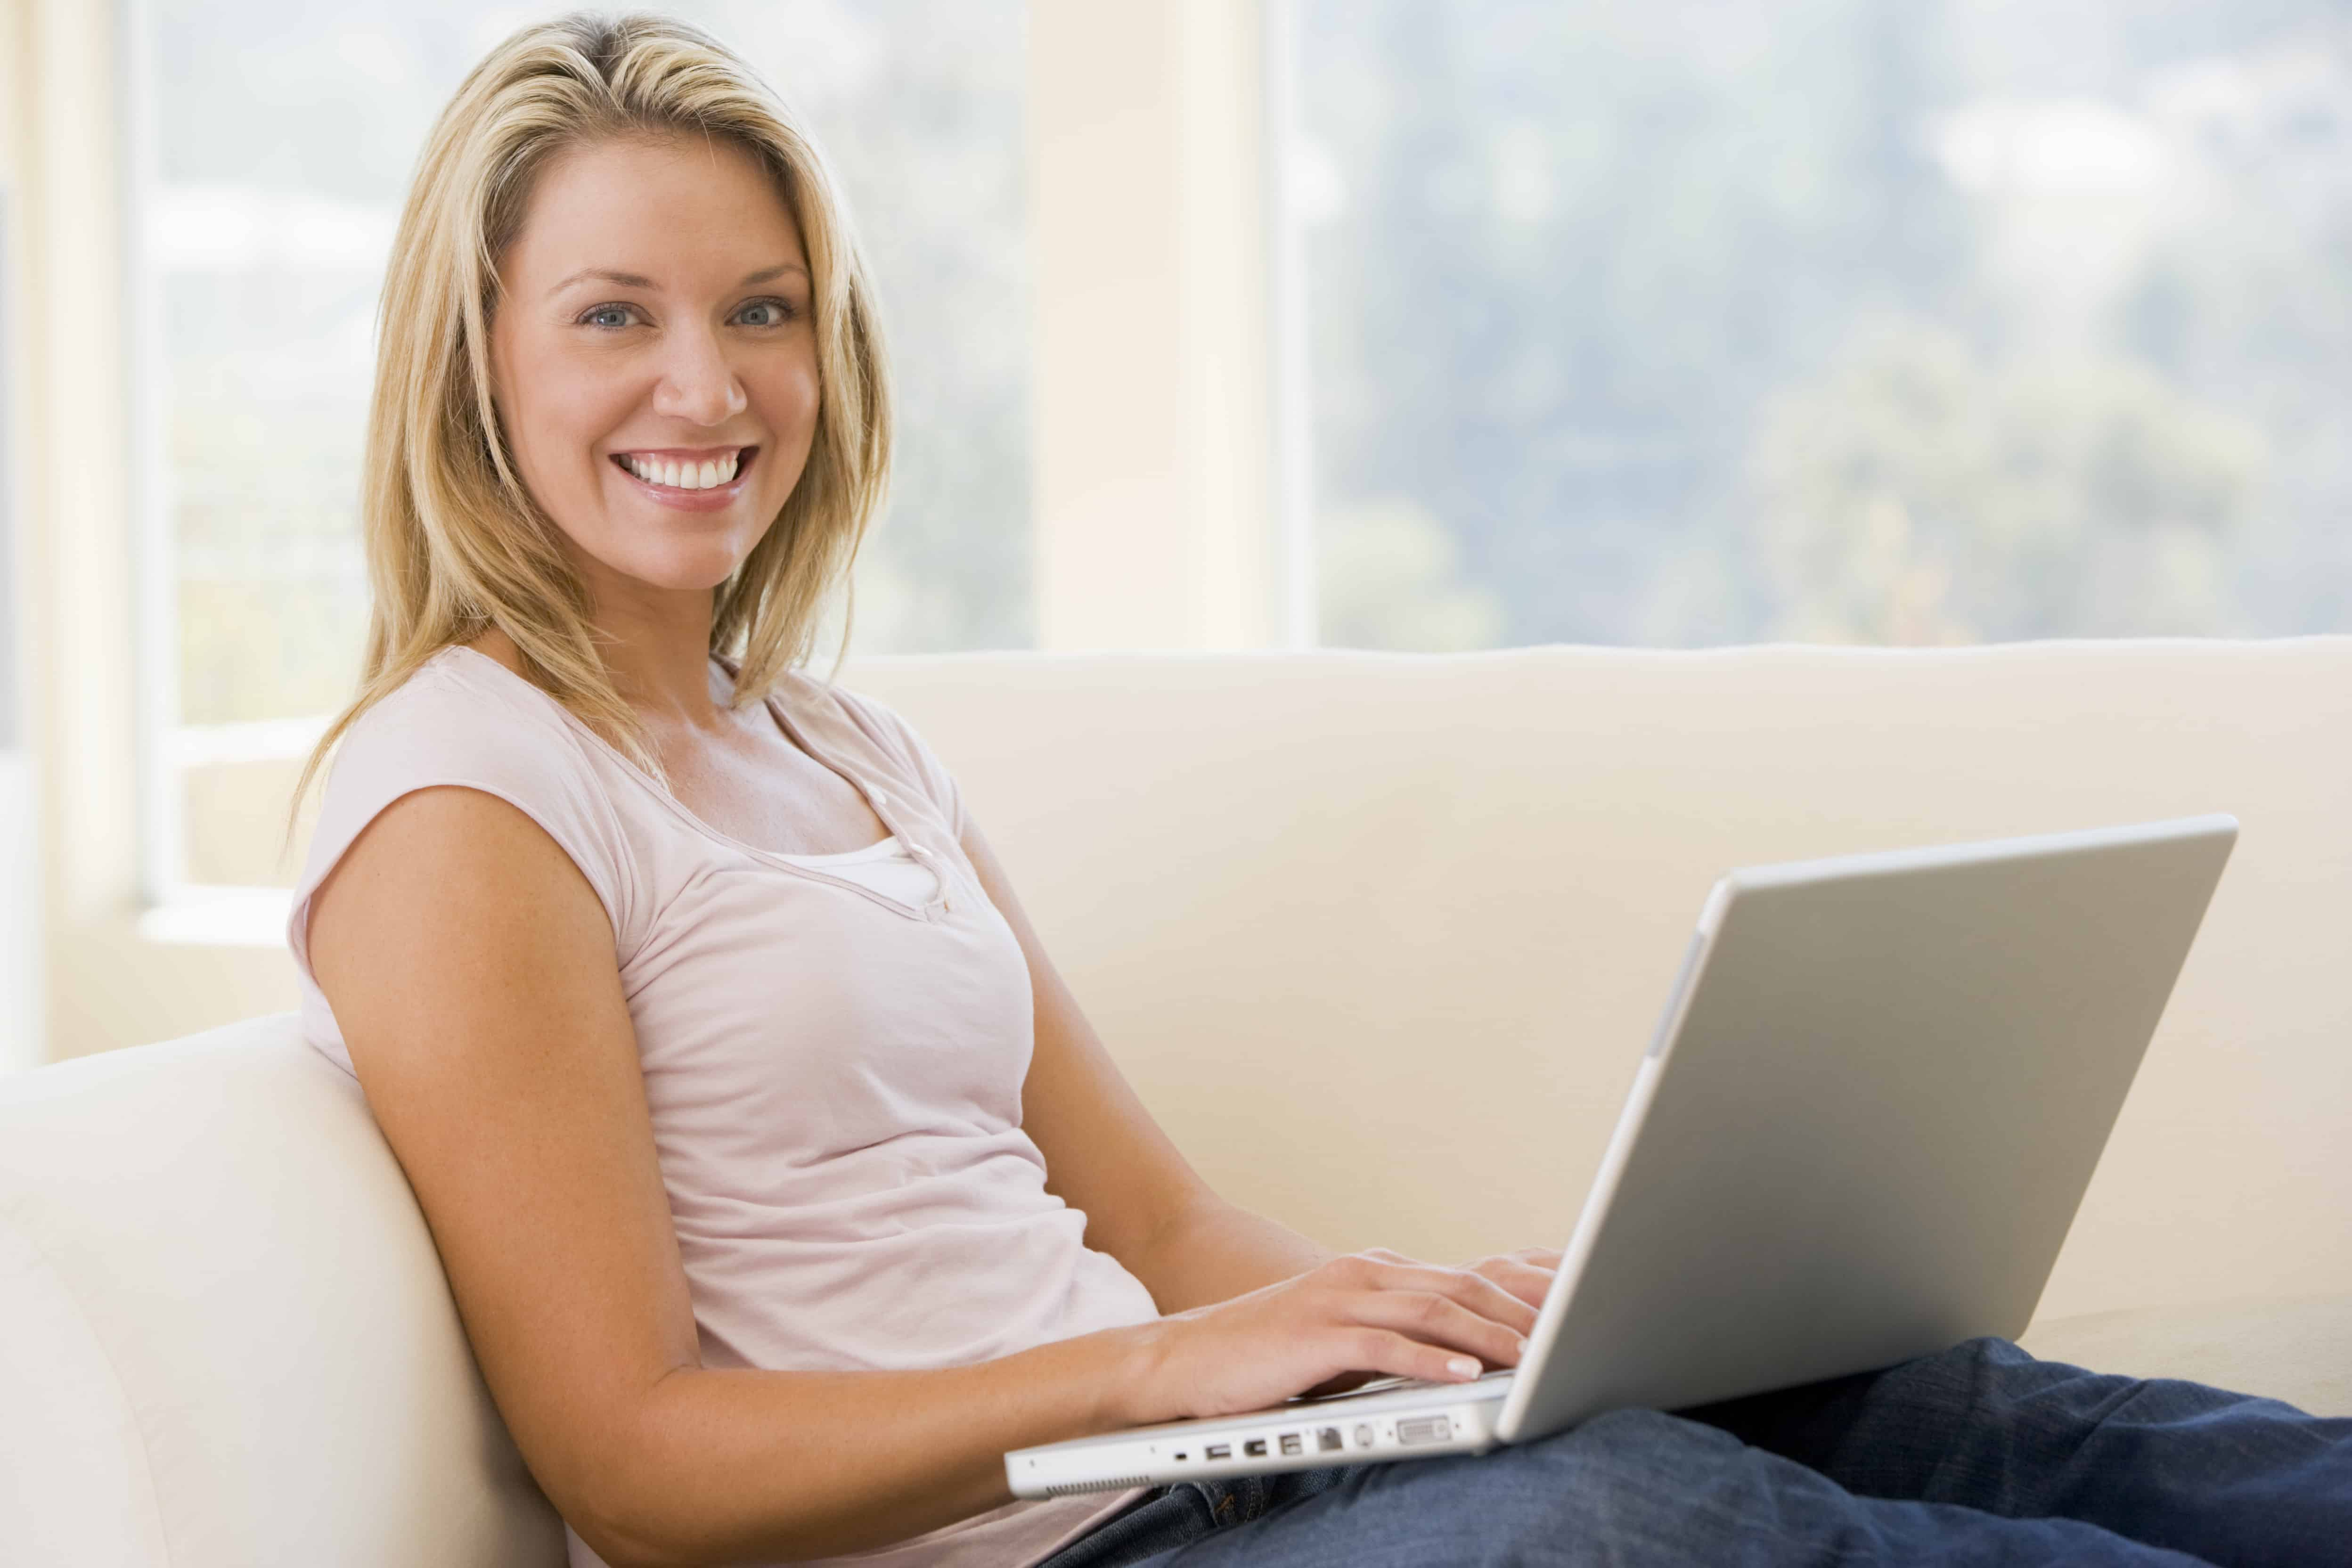 Flexible and Affordable Online Career Training: Start Making Real Money!